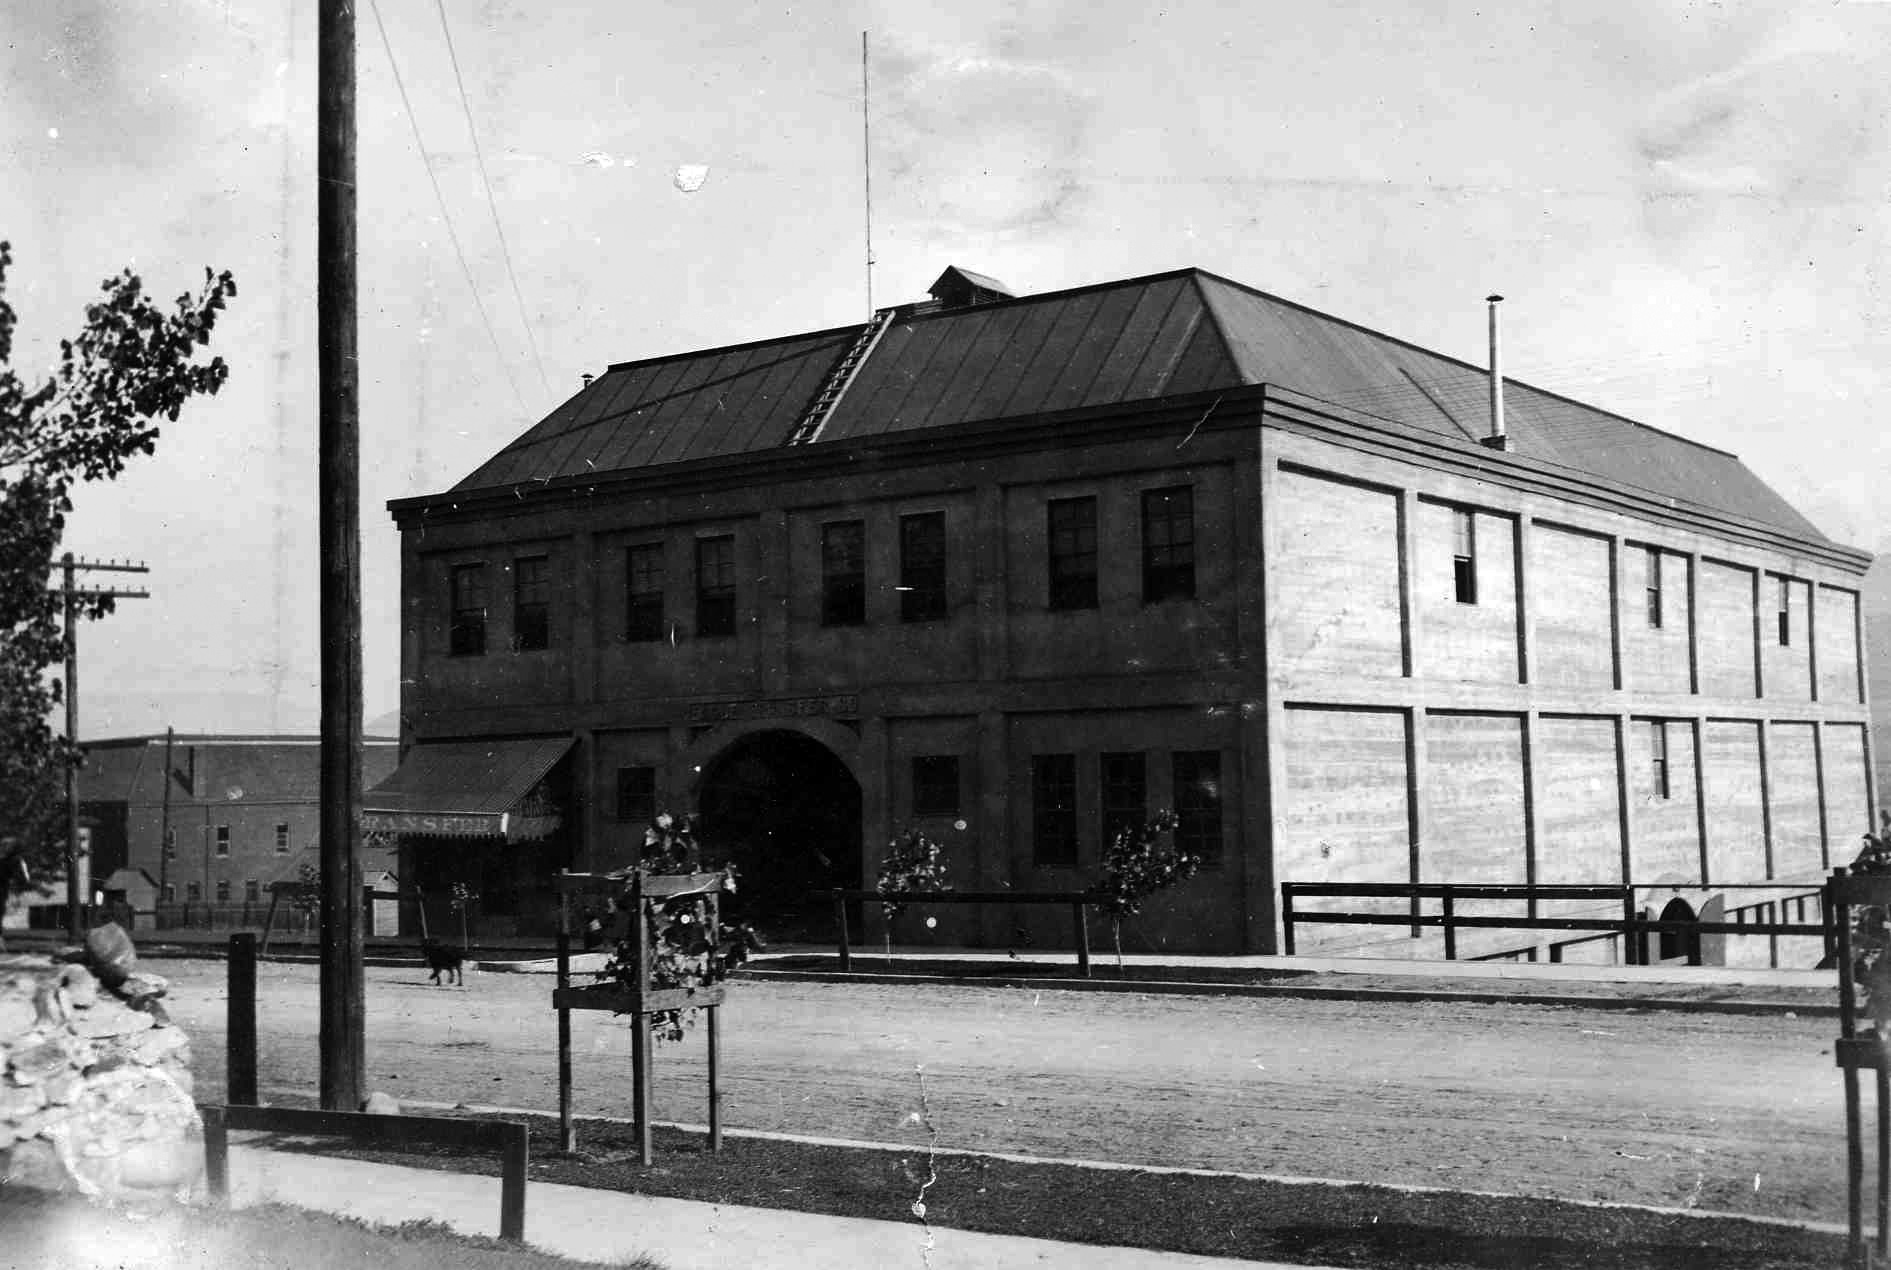 A 1910 photo showing the Eagle Transfer Building.  As of 2020, Eagle Transfer still operates in the Wenatchee Valley, however not from this address.